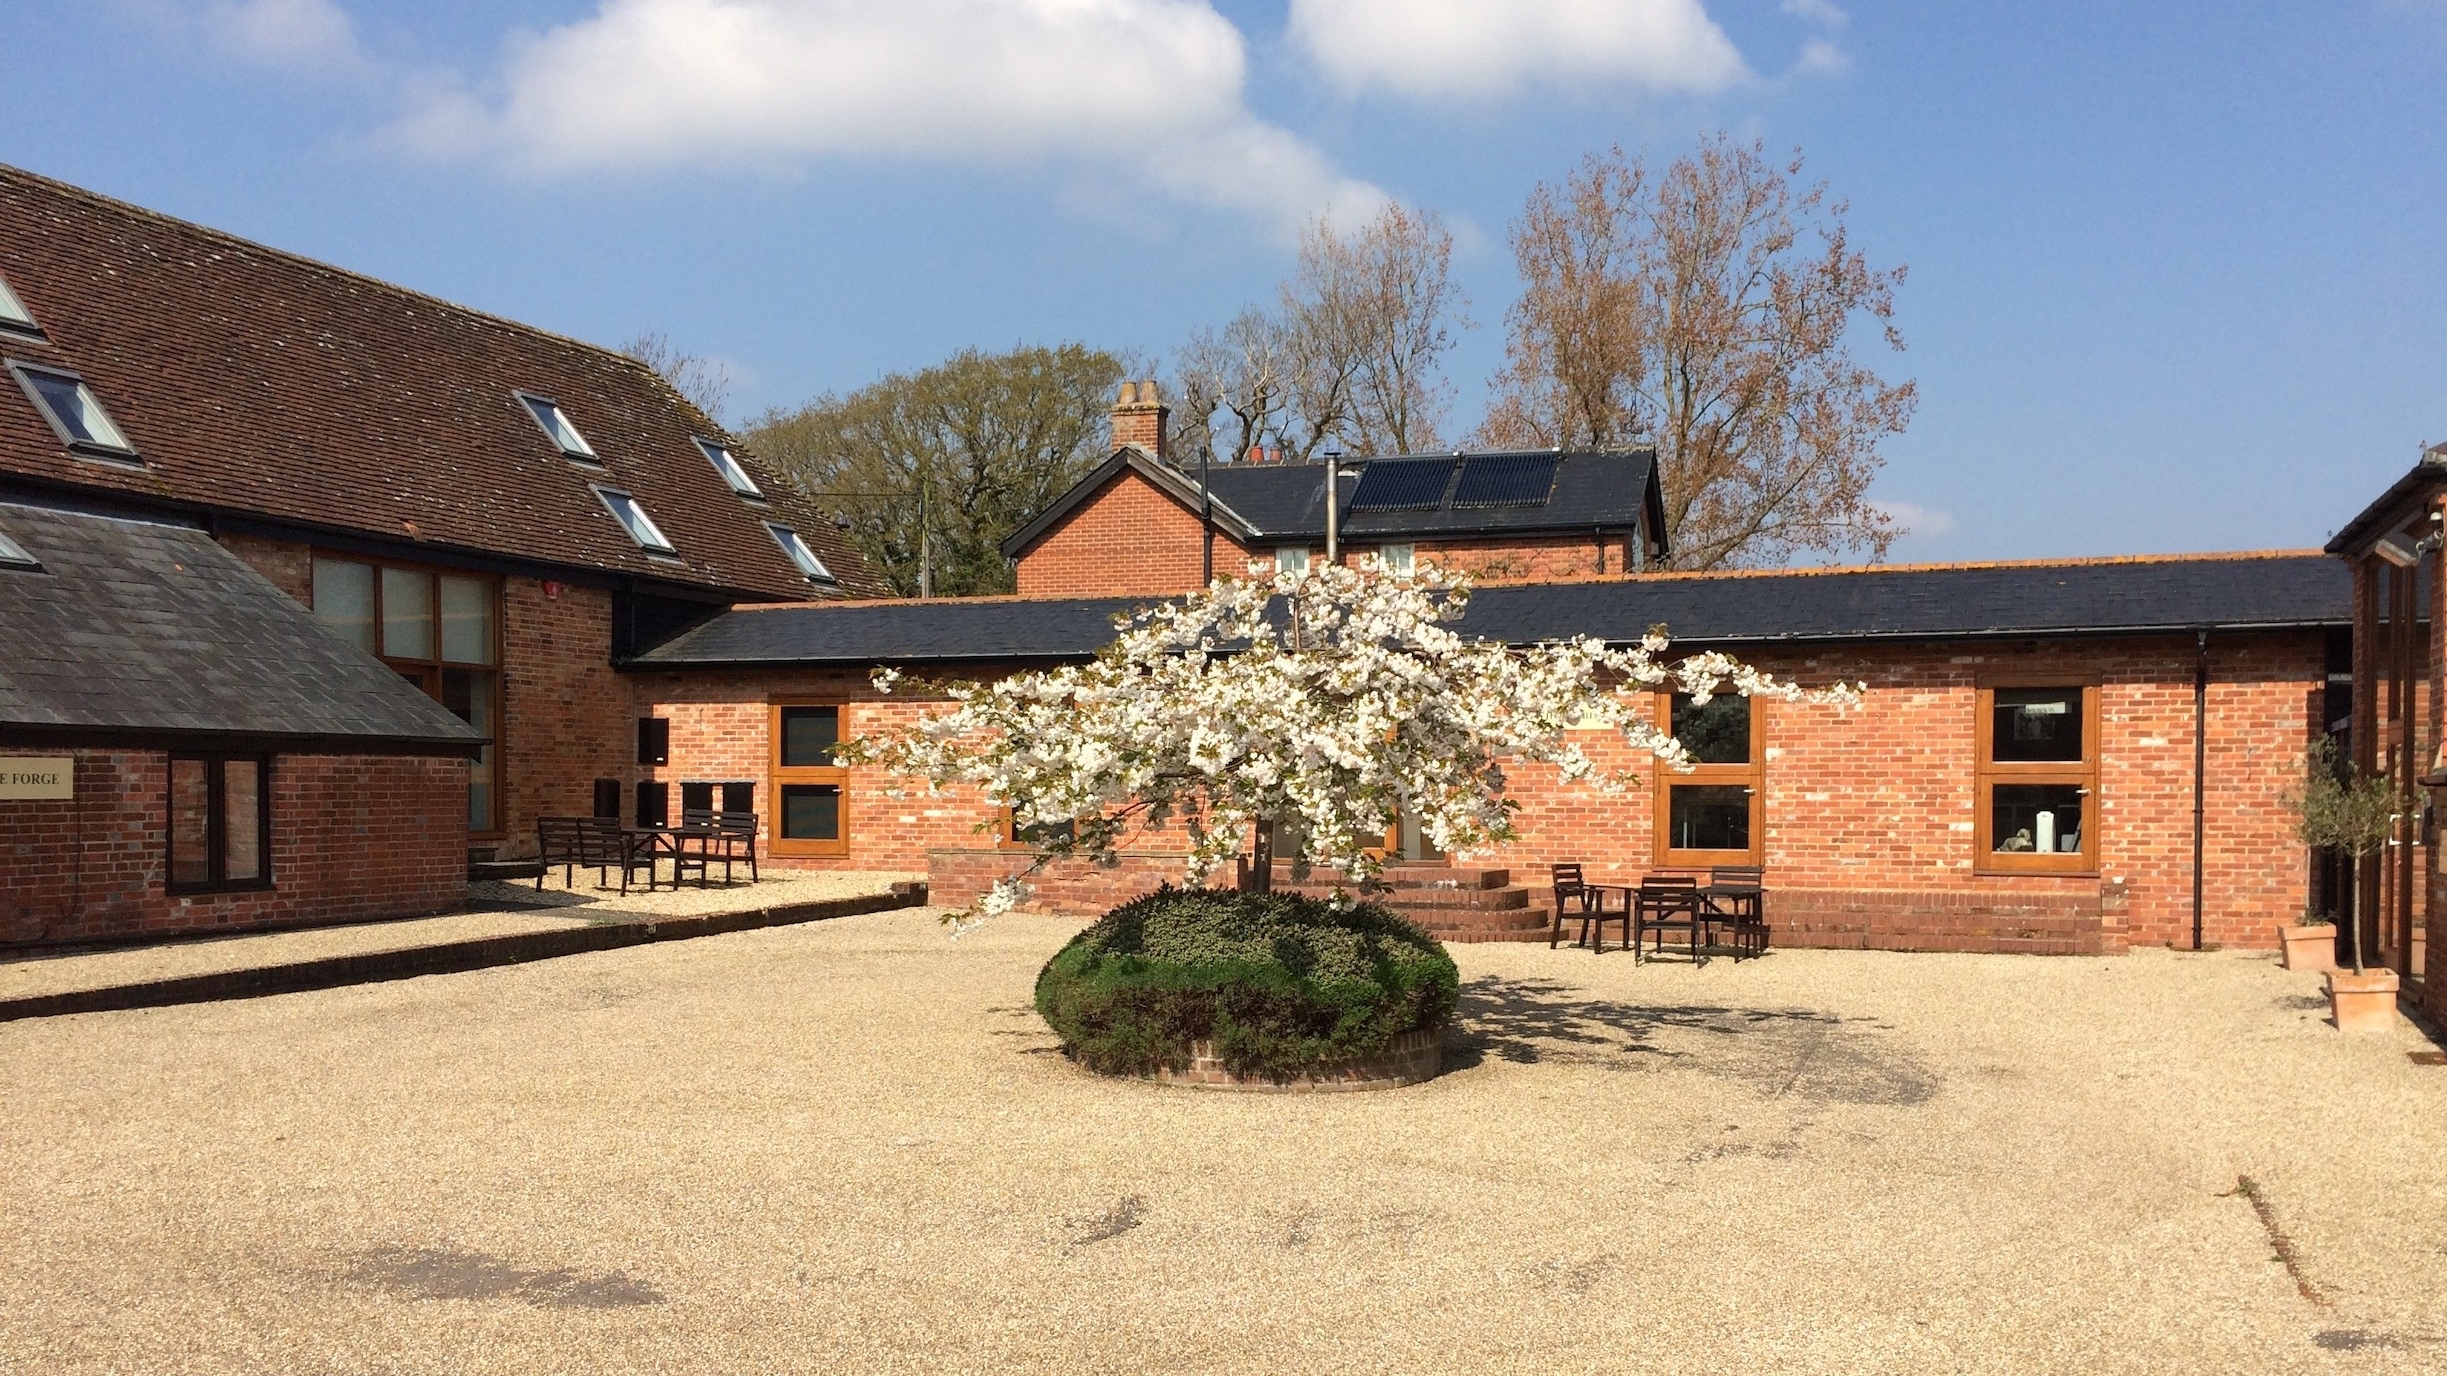 View of main barns at Efford Park with blossoming tree